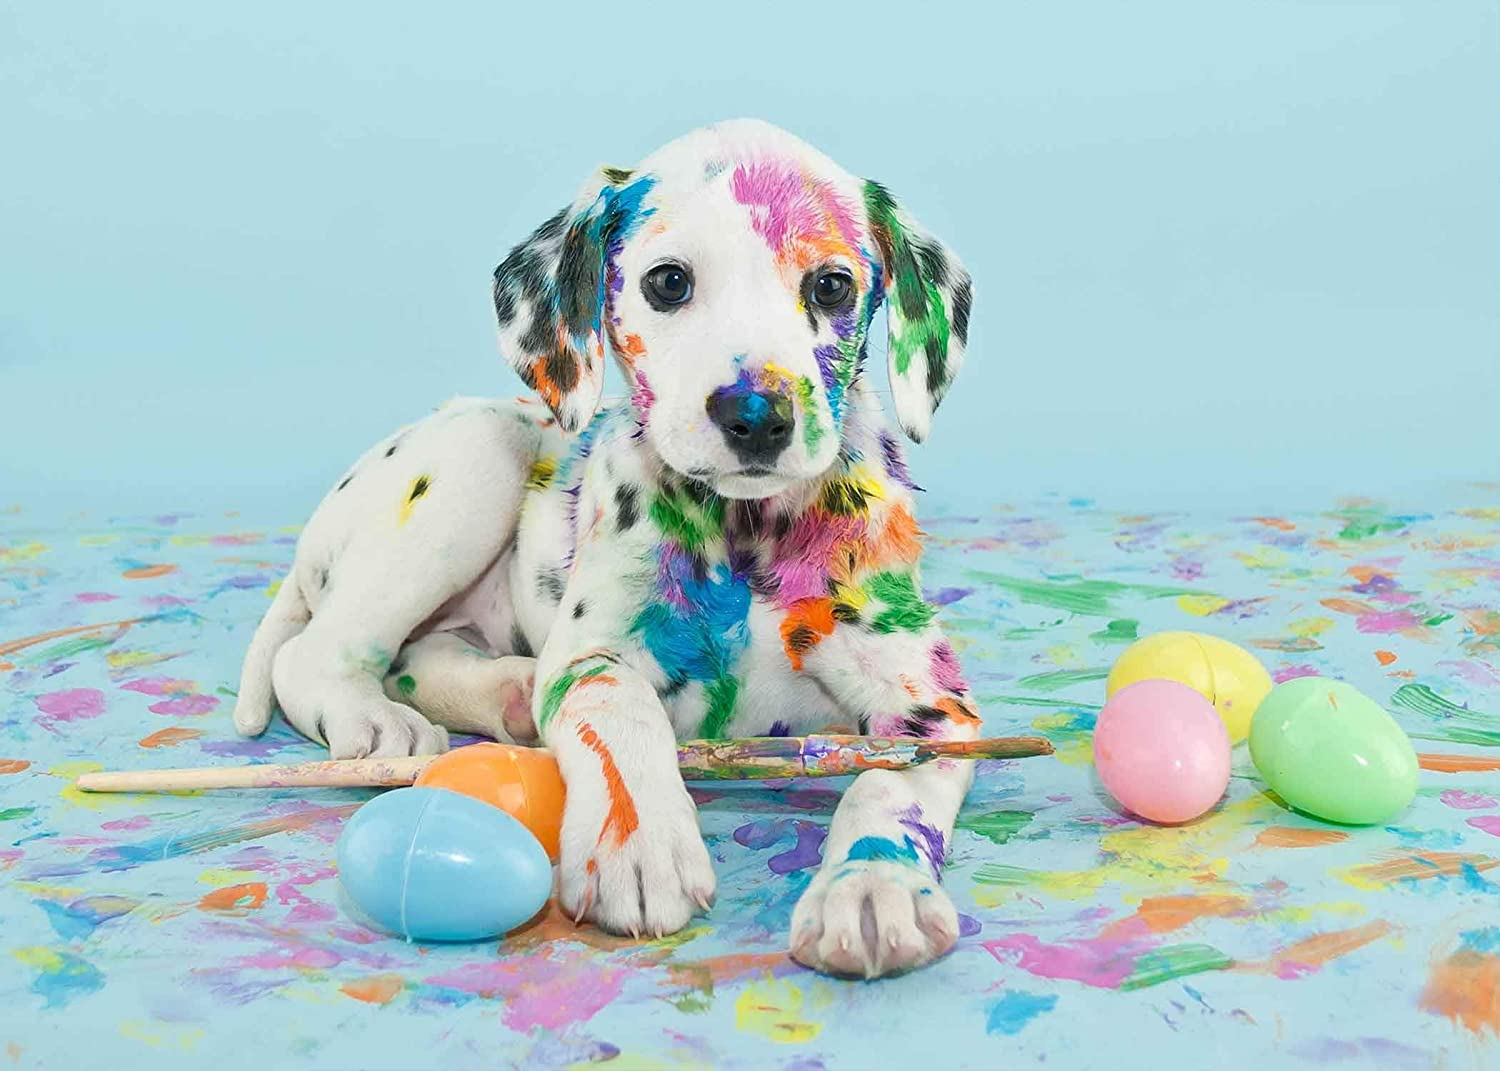 15x10ft Vinyl Pet Backdrop Colourful Dog Photography Background for Children Studio Props LYGE357 for Party Decoration Birthday YouTube Videos School Photoshoot Photo Background Props